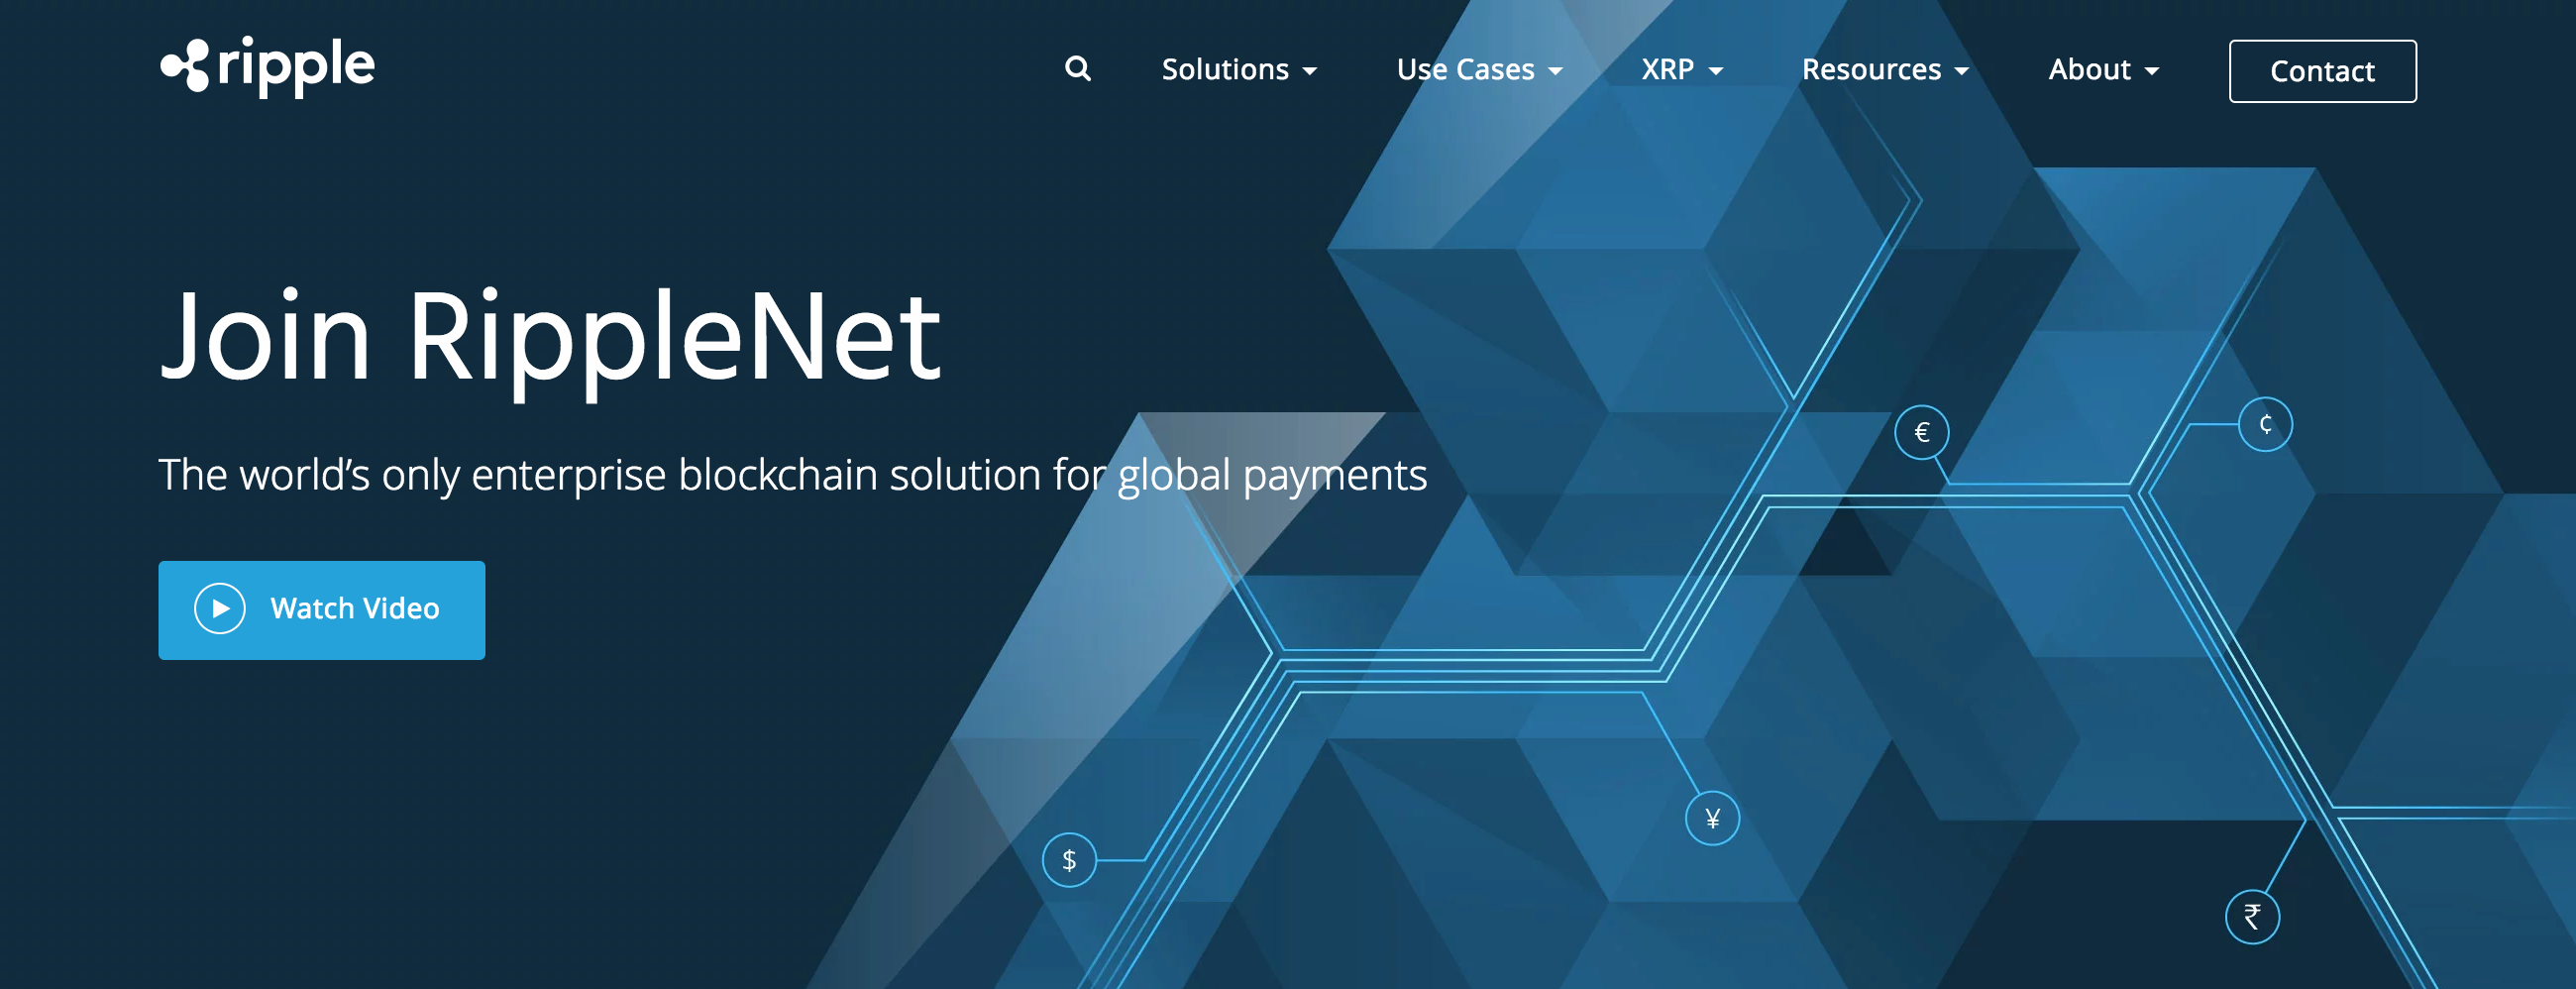 Screenshot from Ripple website